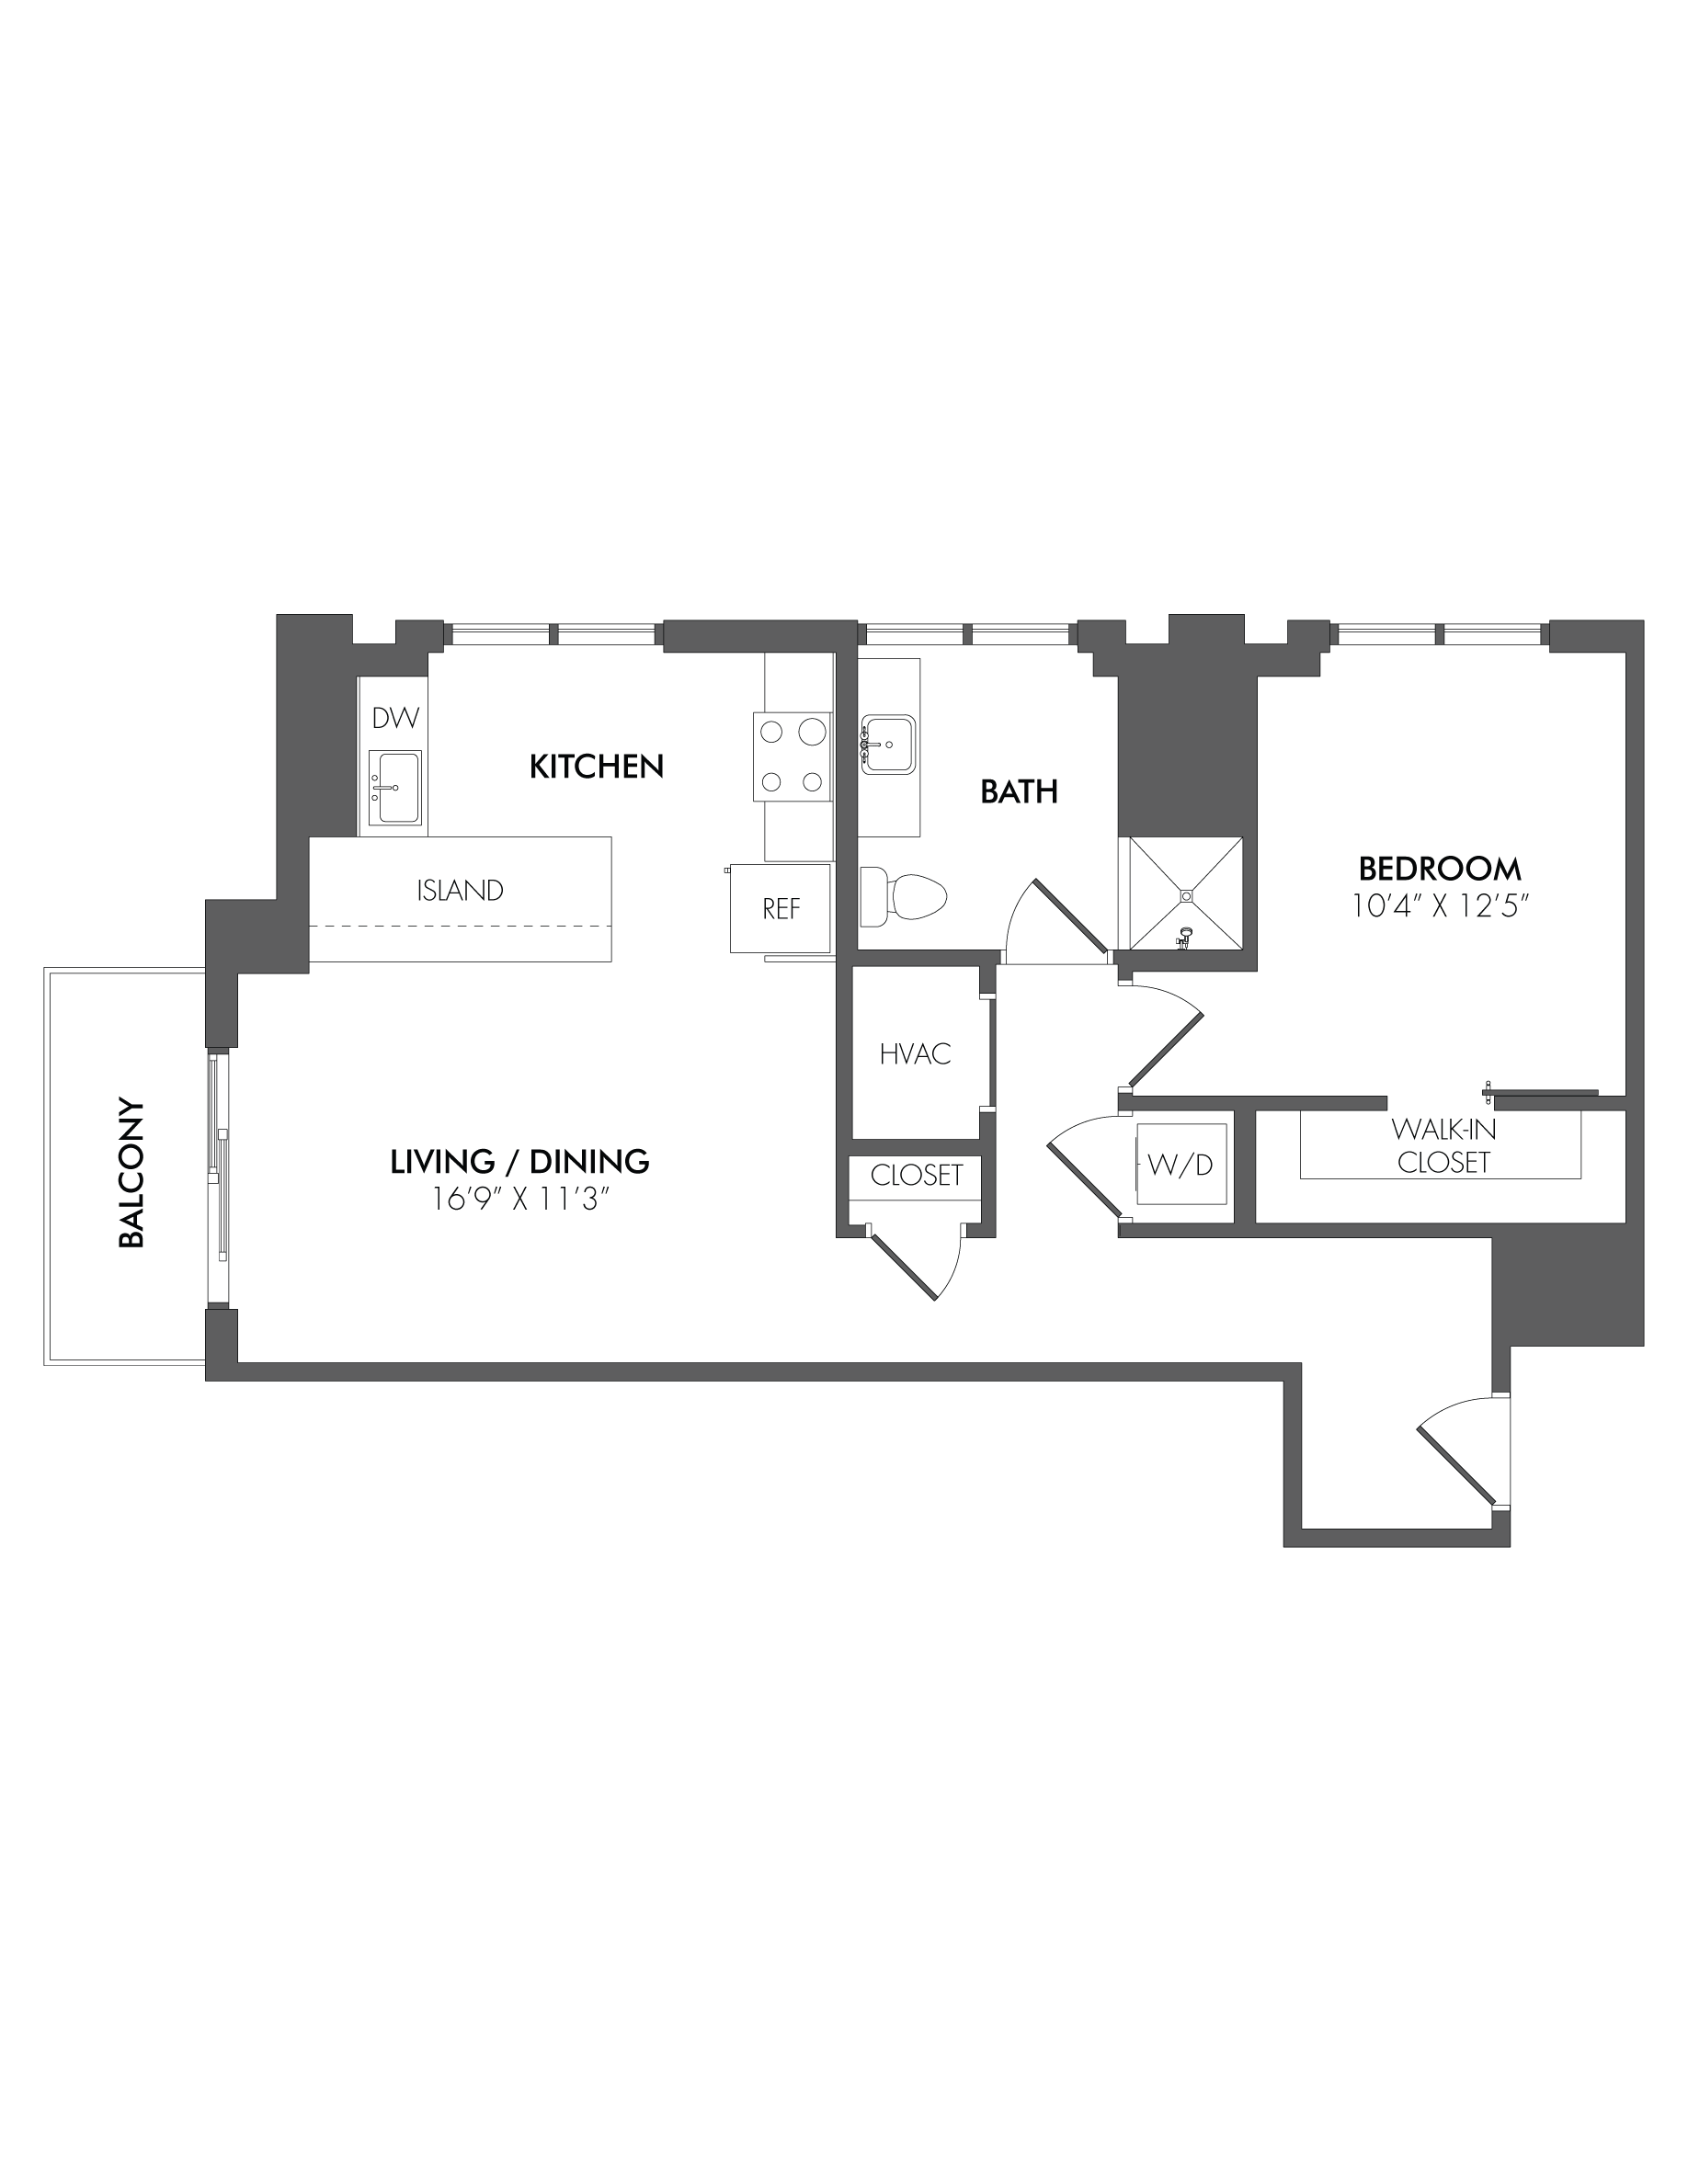 Apartment 1511 floorplan